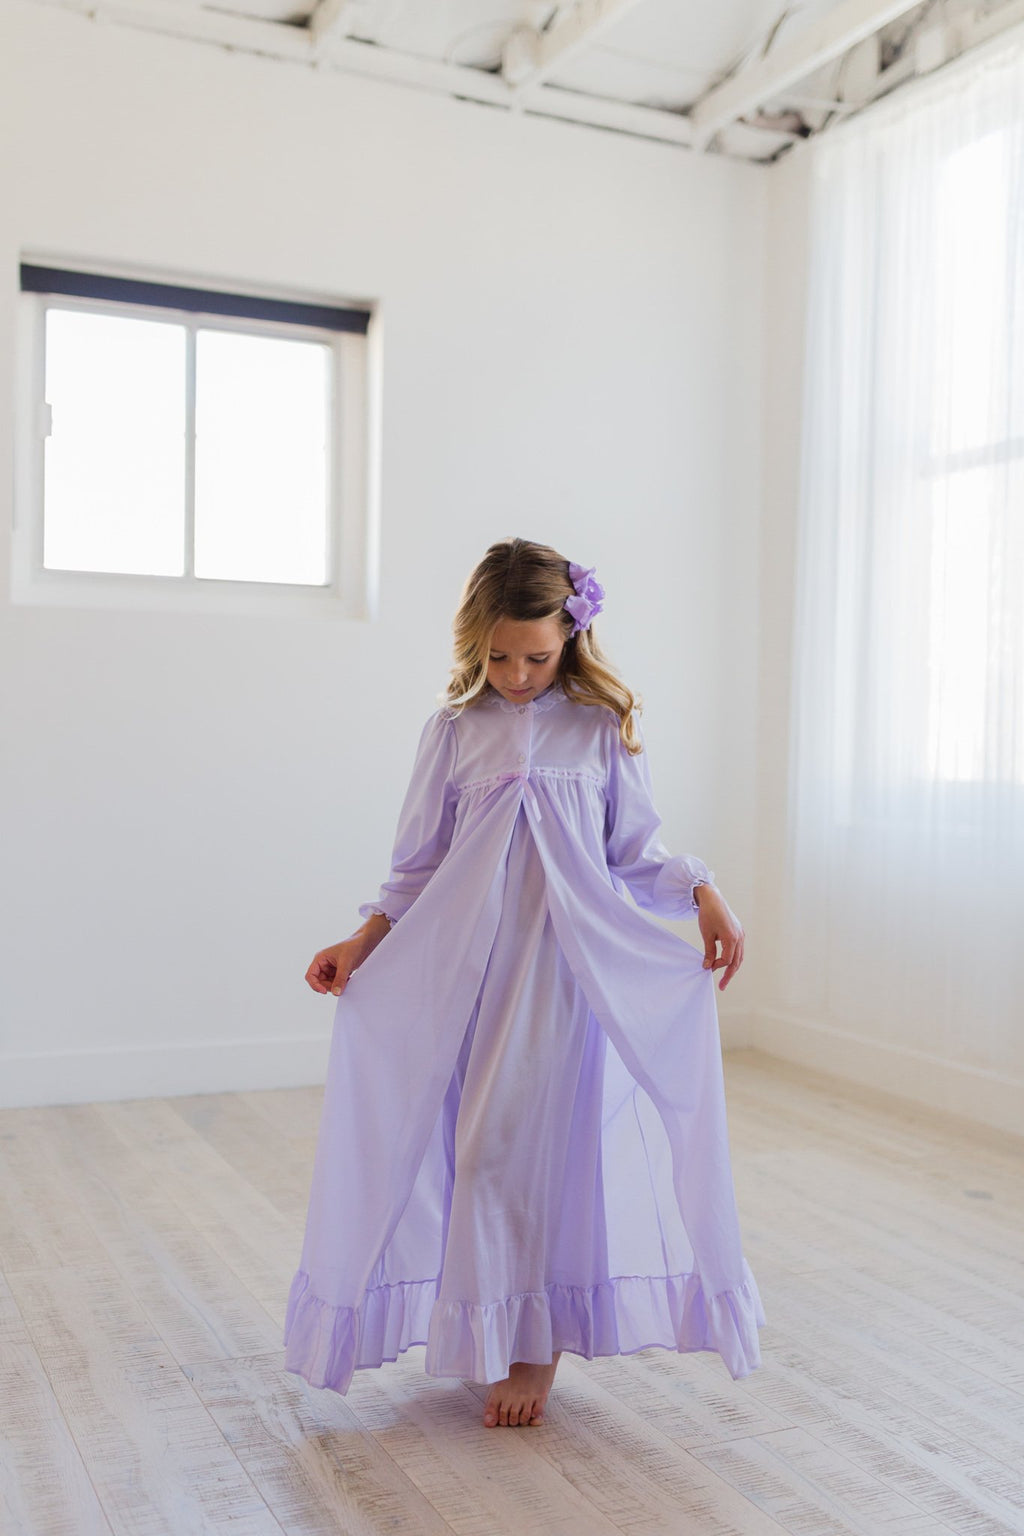 Clara Nightgown Peignoir Set in Lavender